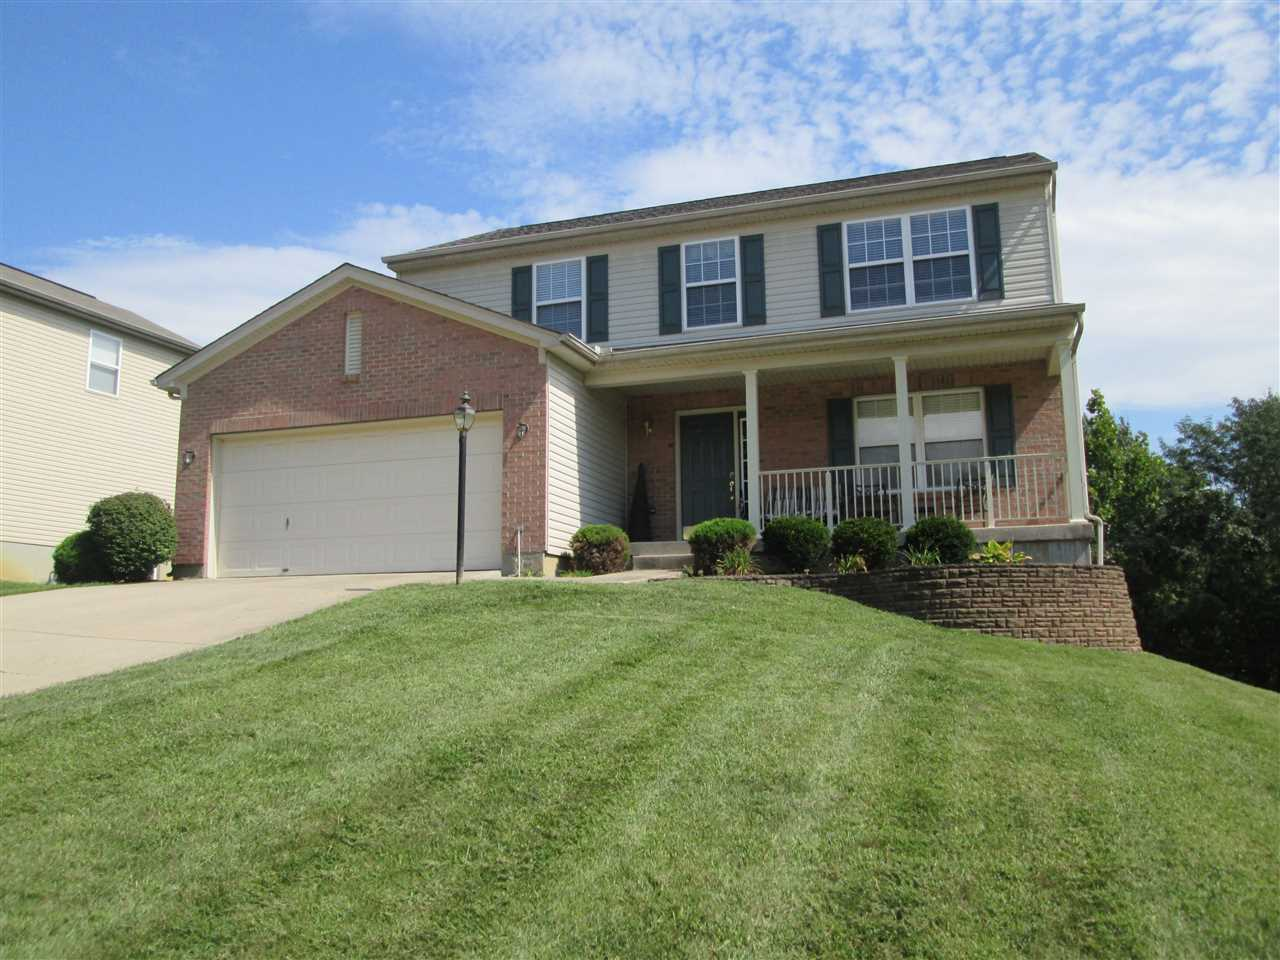 Photo 1 for 1778 Marshview Ct Hebron, KY 41048